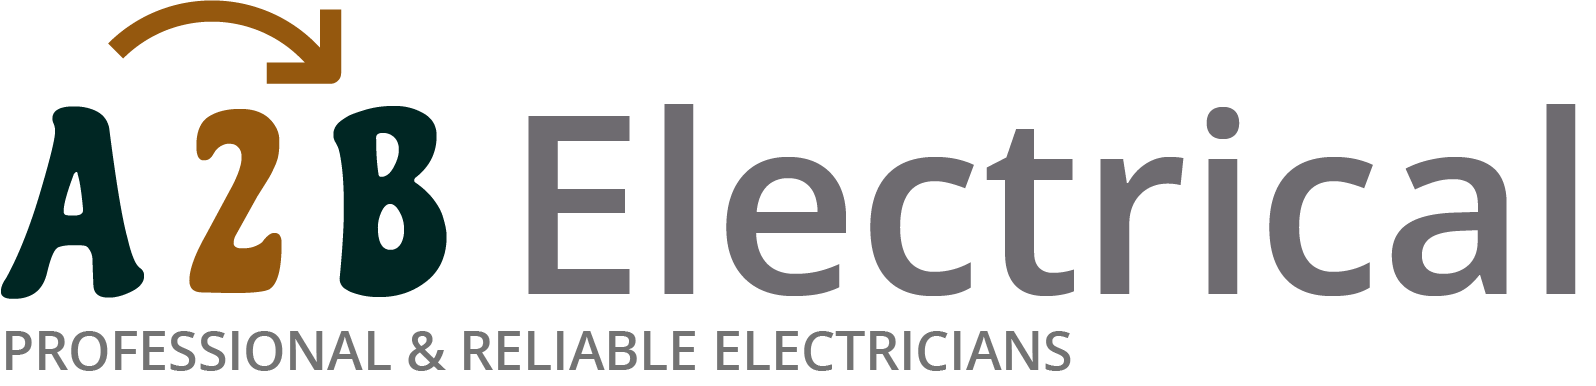 If you have electrical wiring problems in Archway, we can provide an electrician to have a look for you.